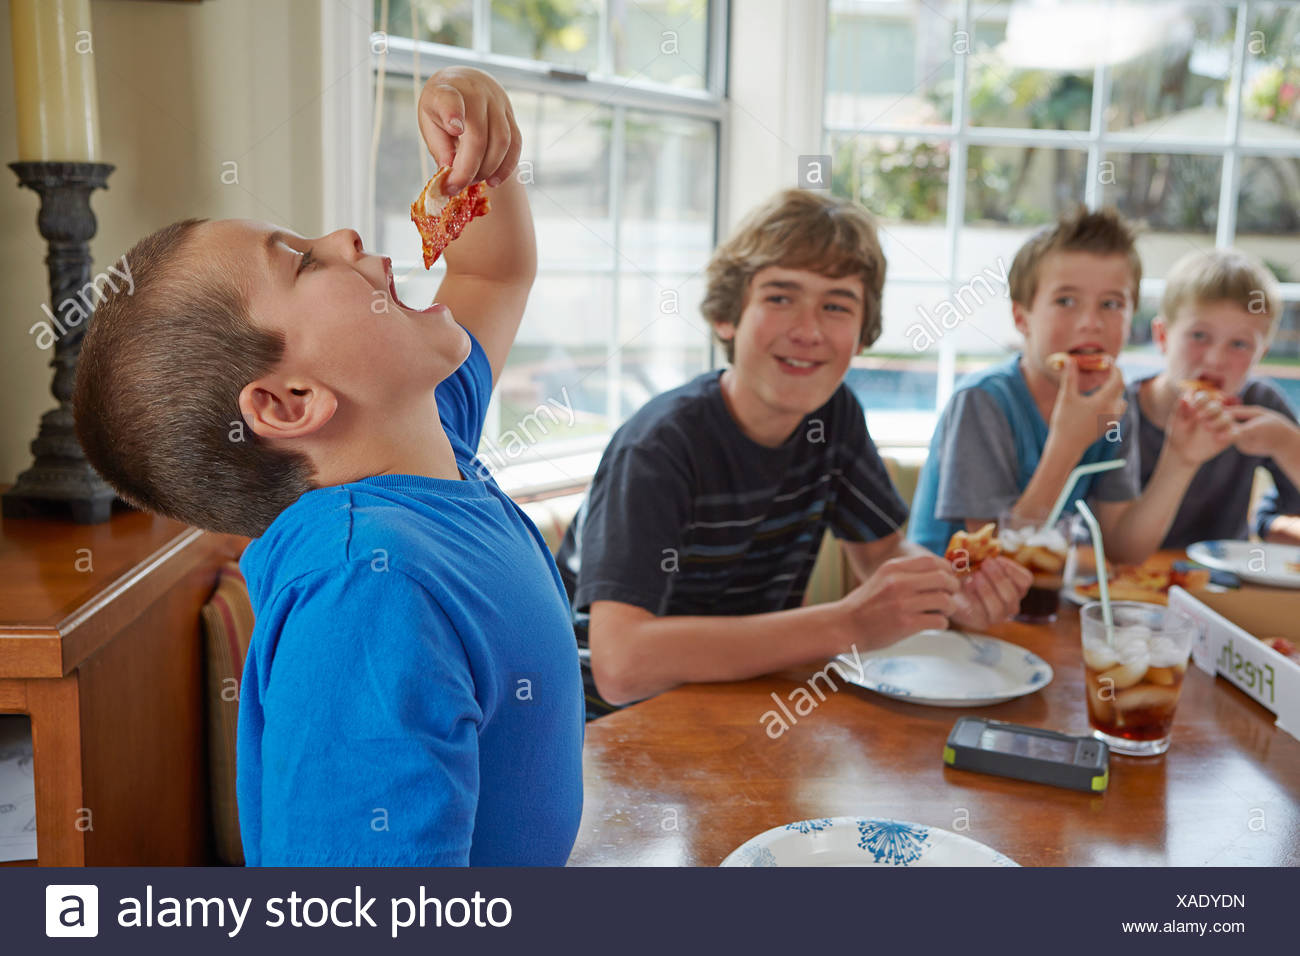 Boy swallowing pizza with mouth open - Stock Image